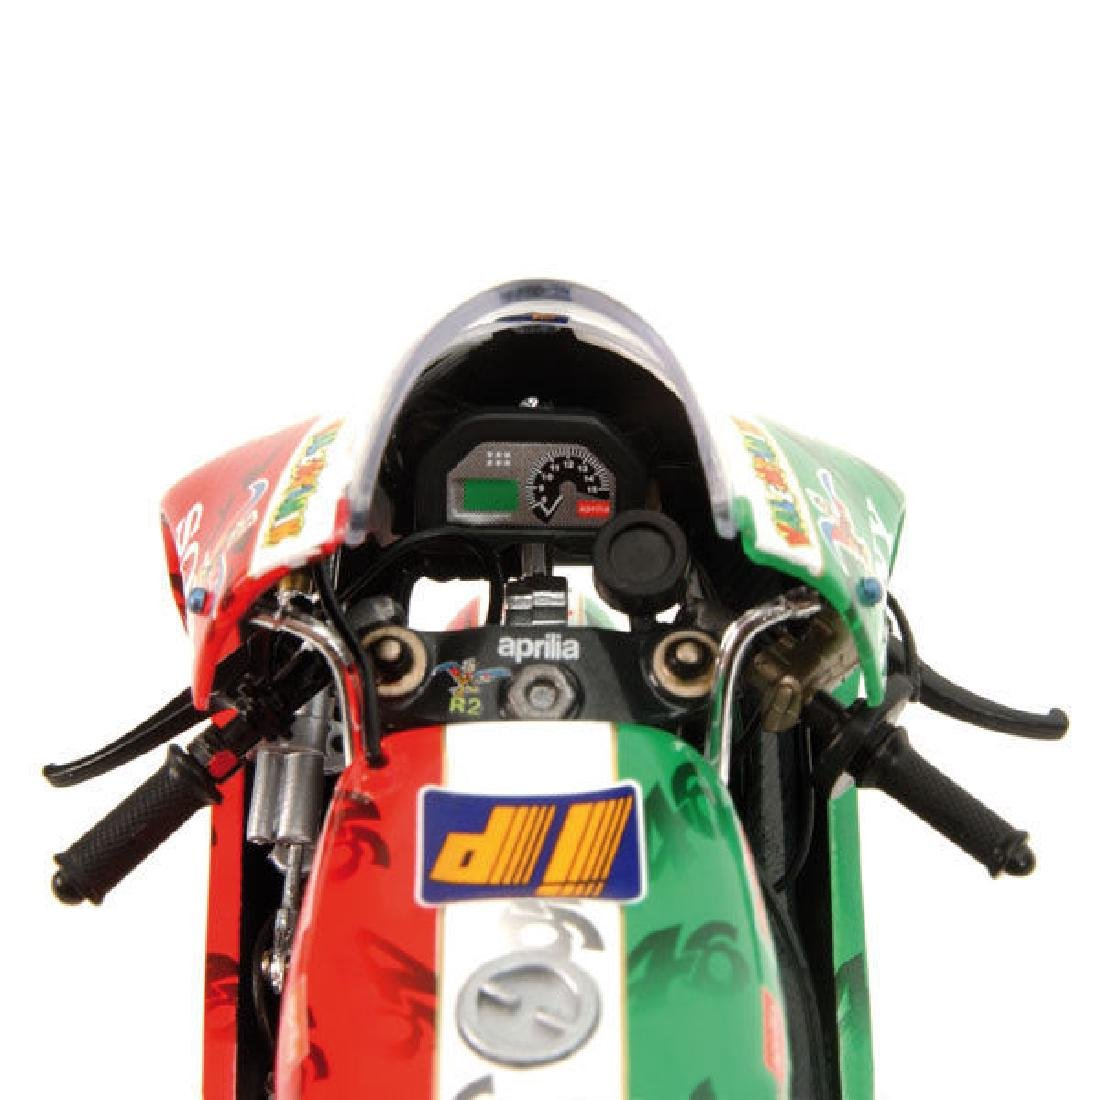 Minichamps Scale 1:12 Aprilia Team Aprilia Grand Prix - 8